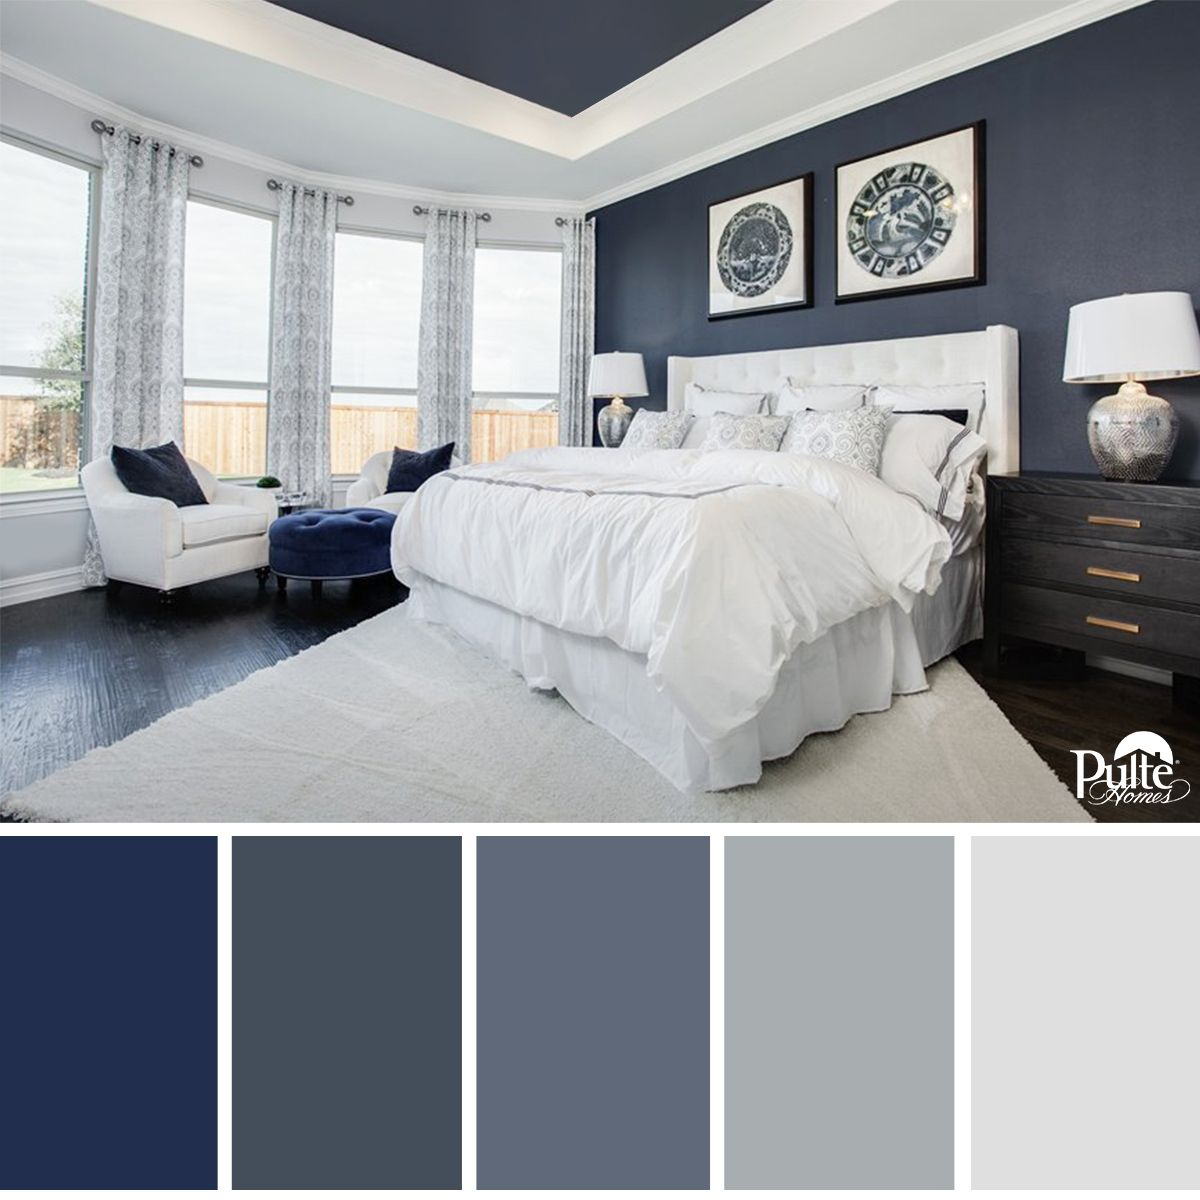 blue bedroom paint ideas. This bedroom design has the right idea  The rich blue color palette and decor create